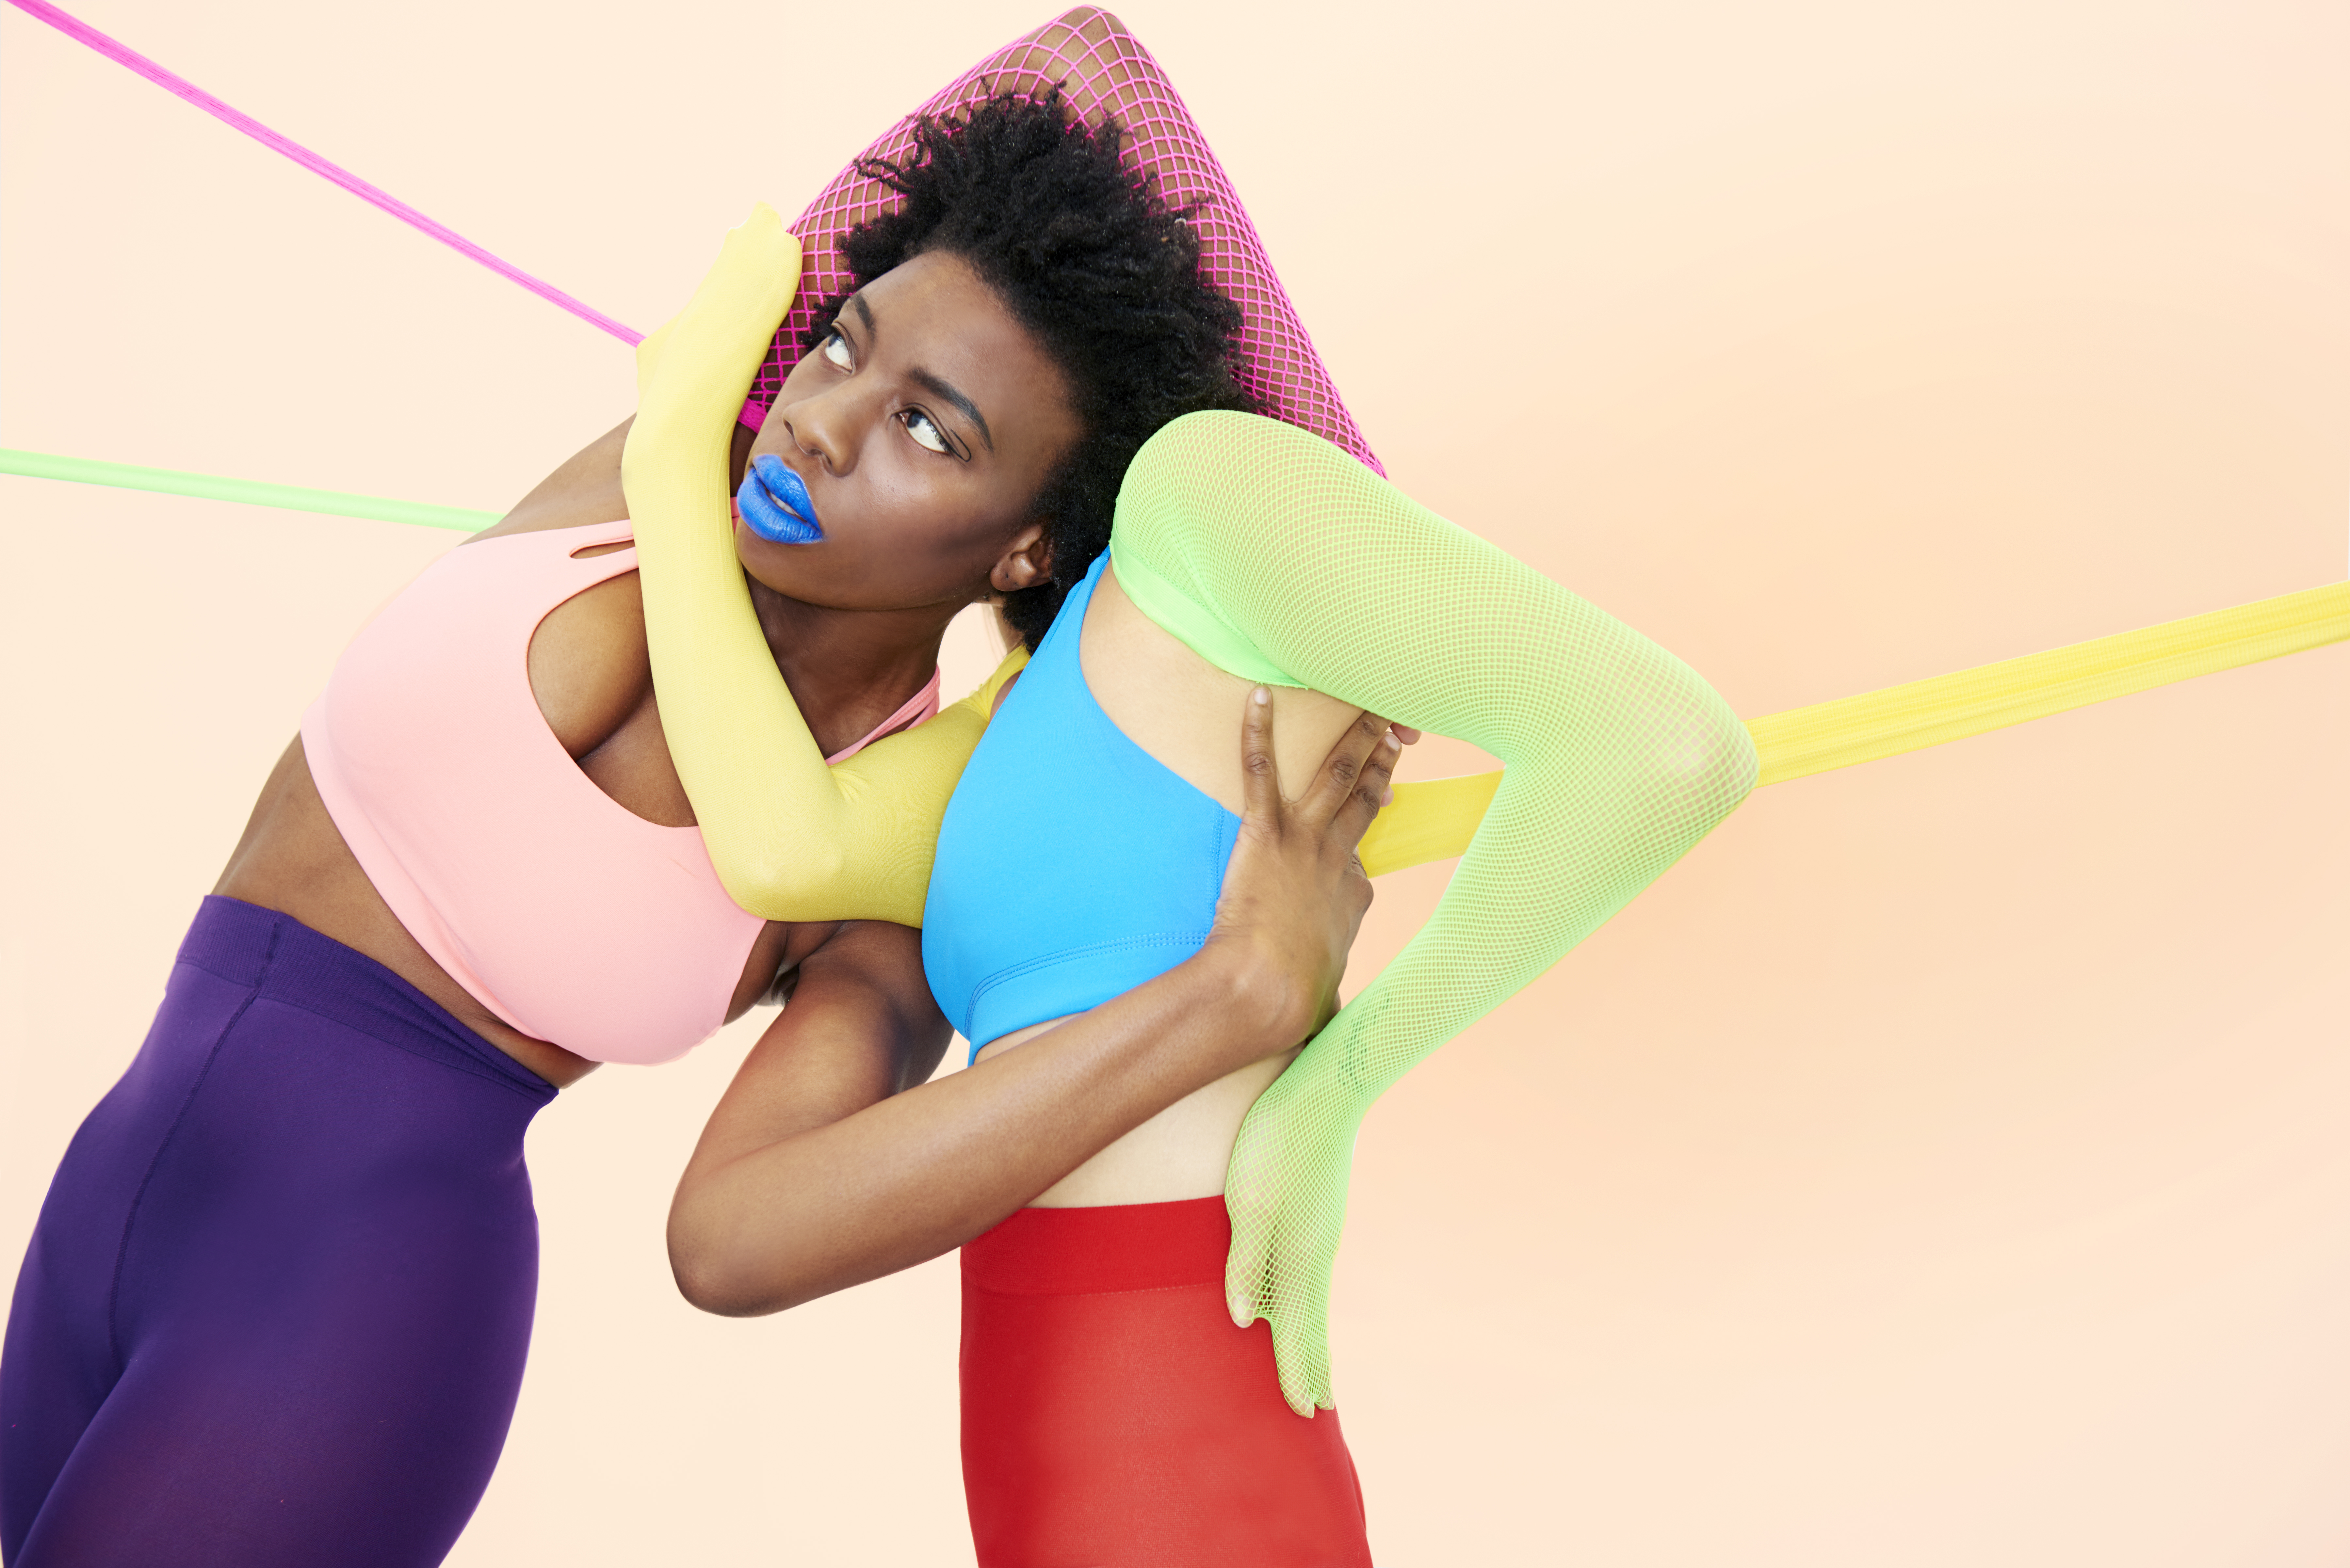 people entwined in colourful clothing